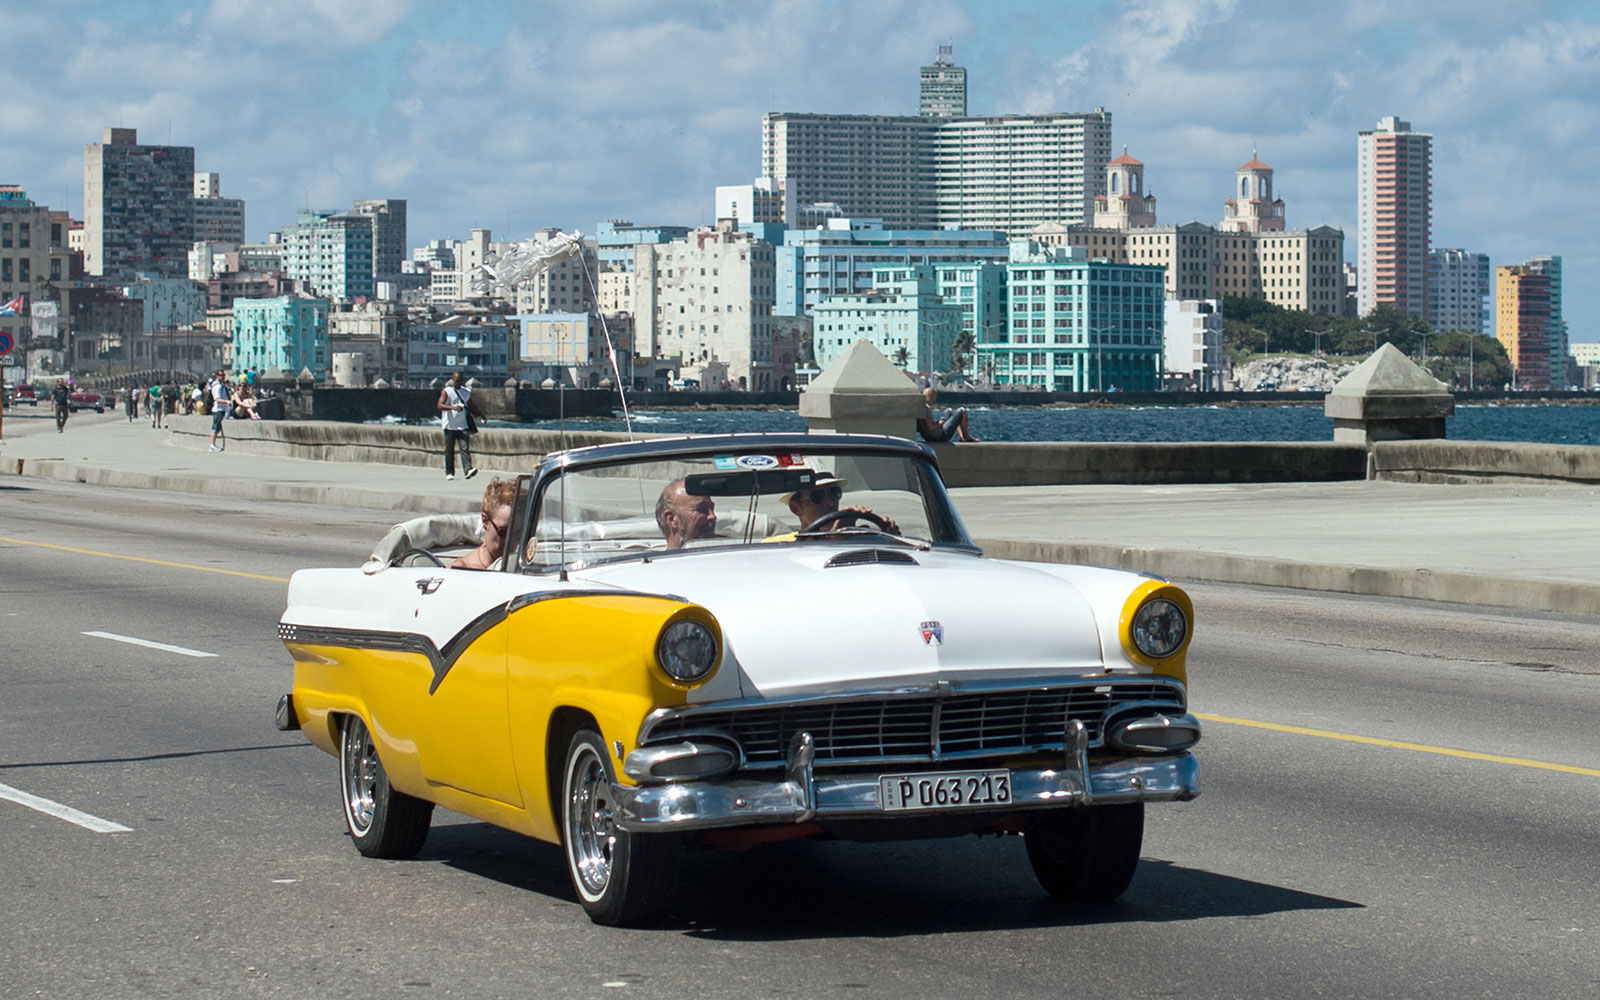 Ferry Service to Cuba